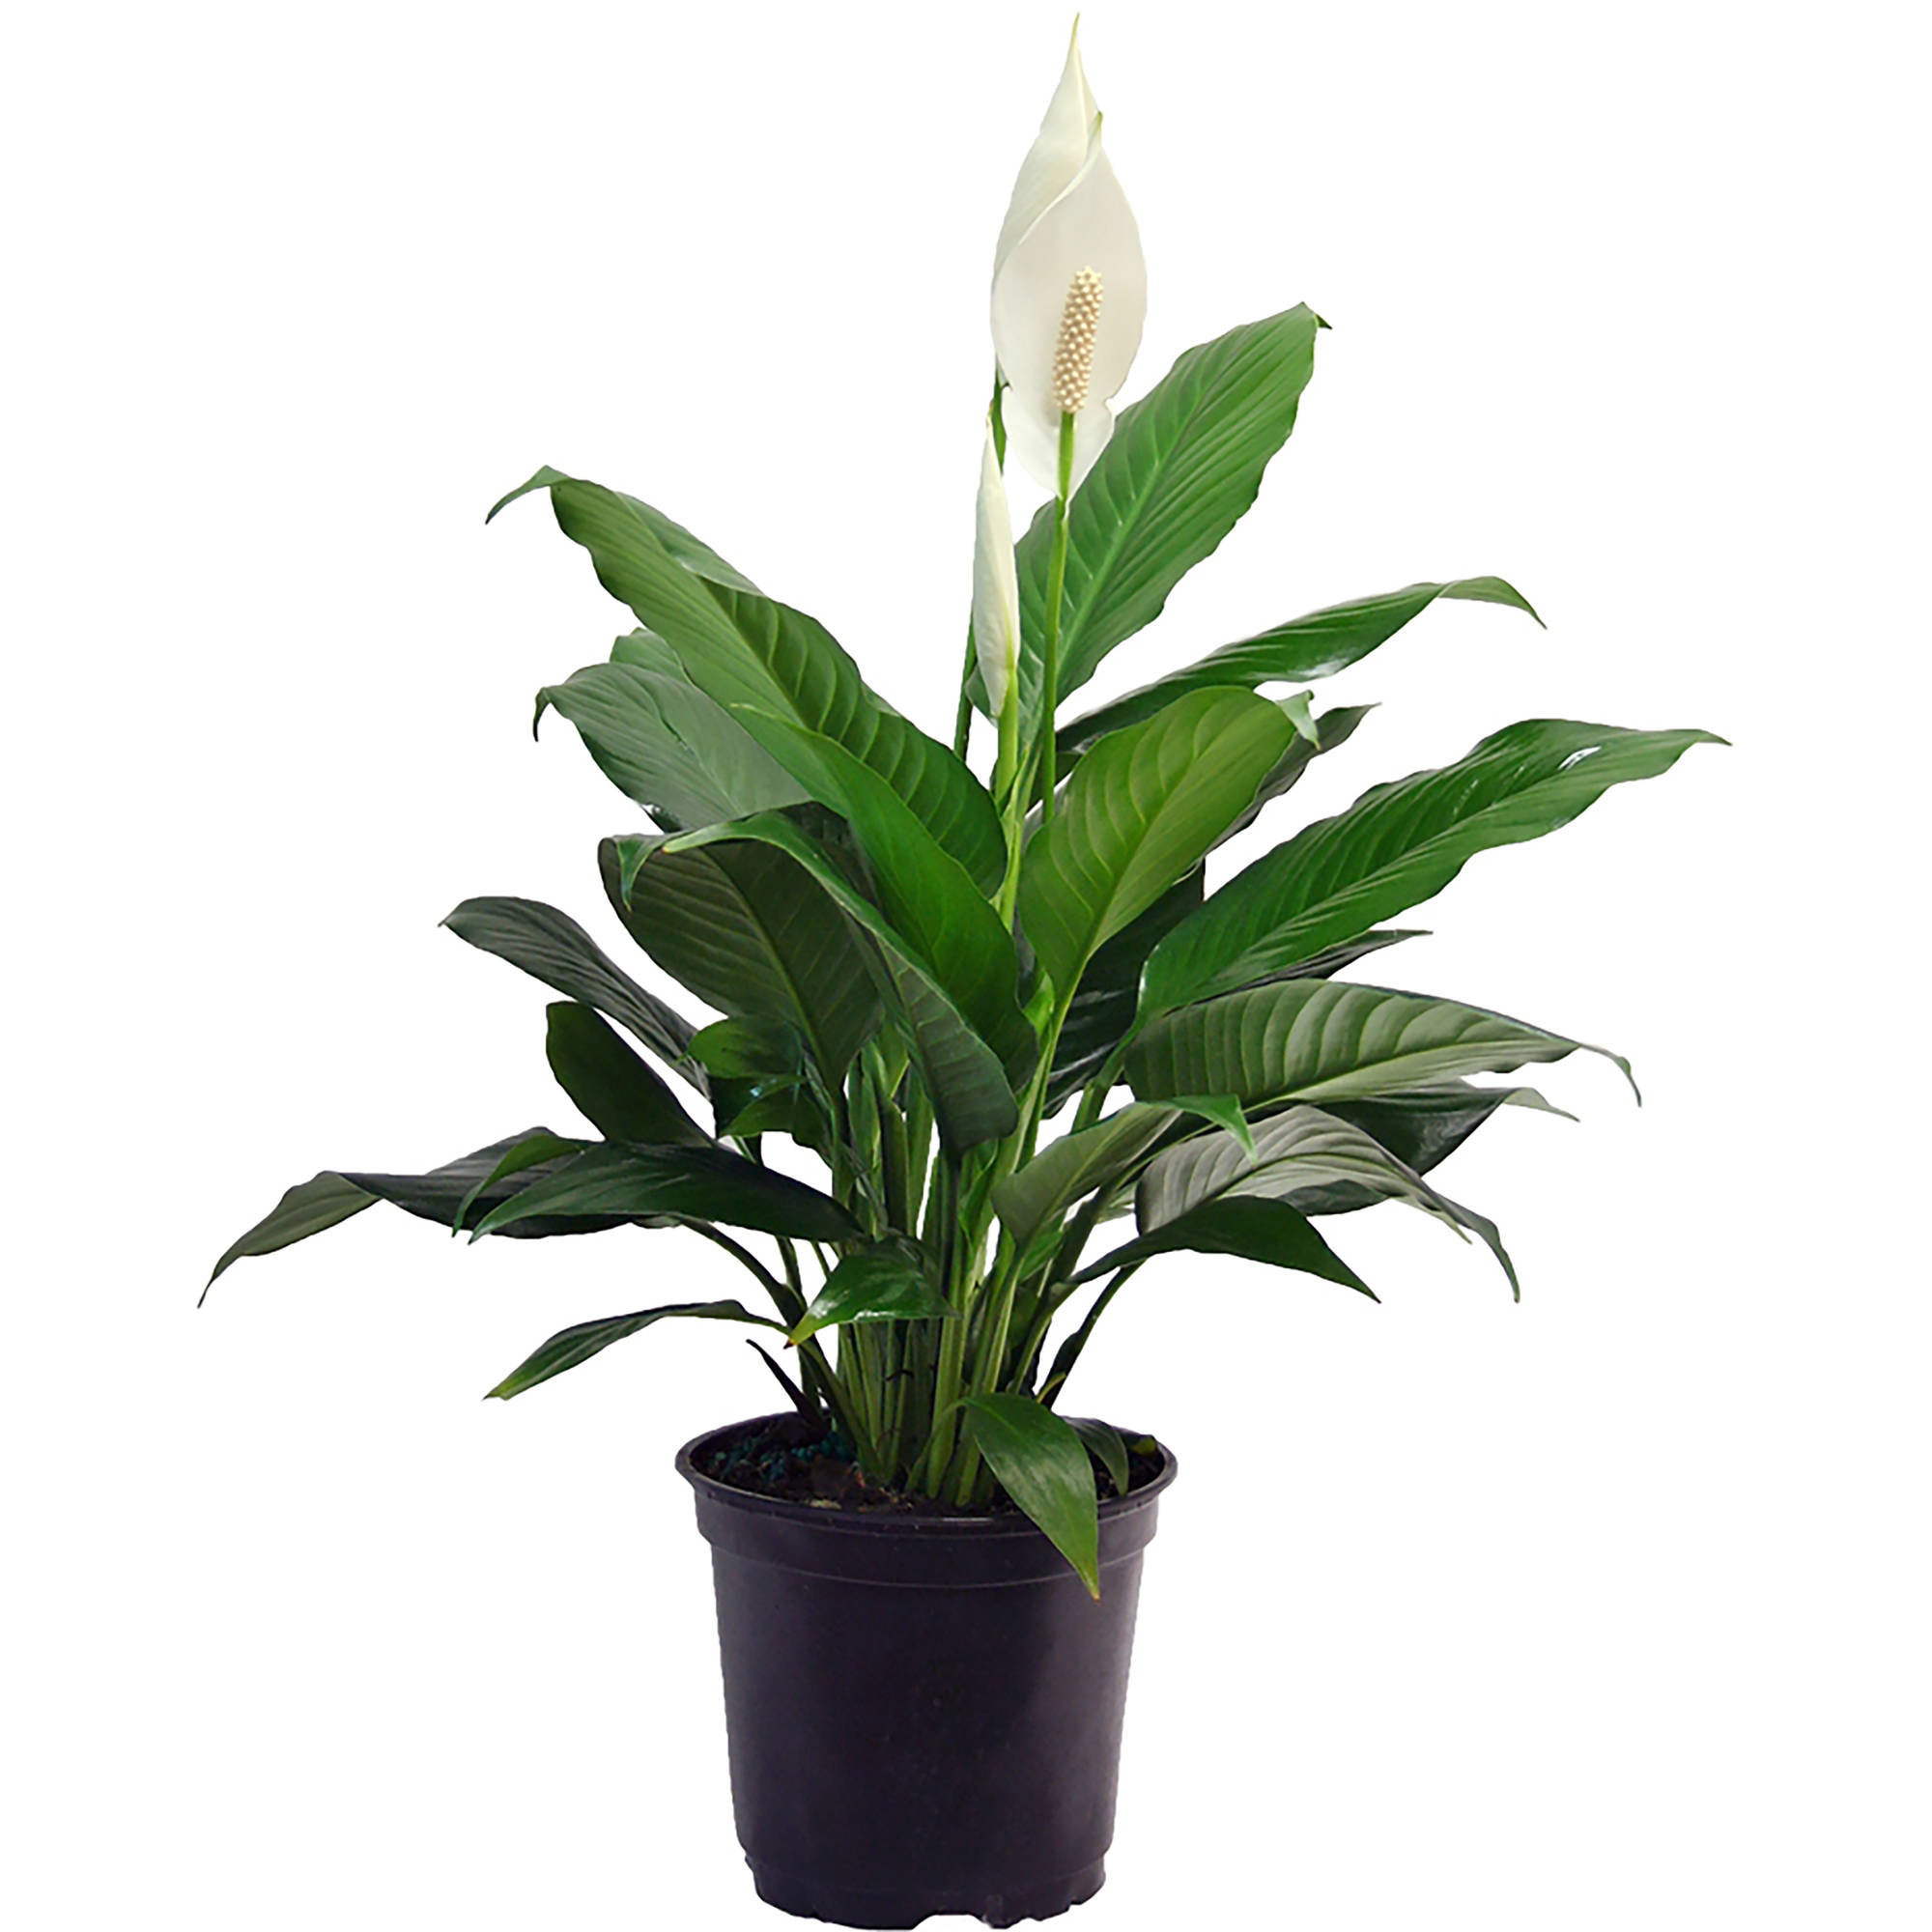 "Delray Plants Spathiphyllum in 6"" Pot"